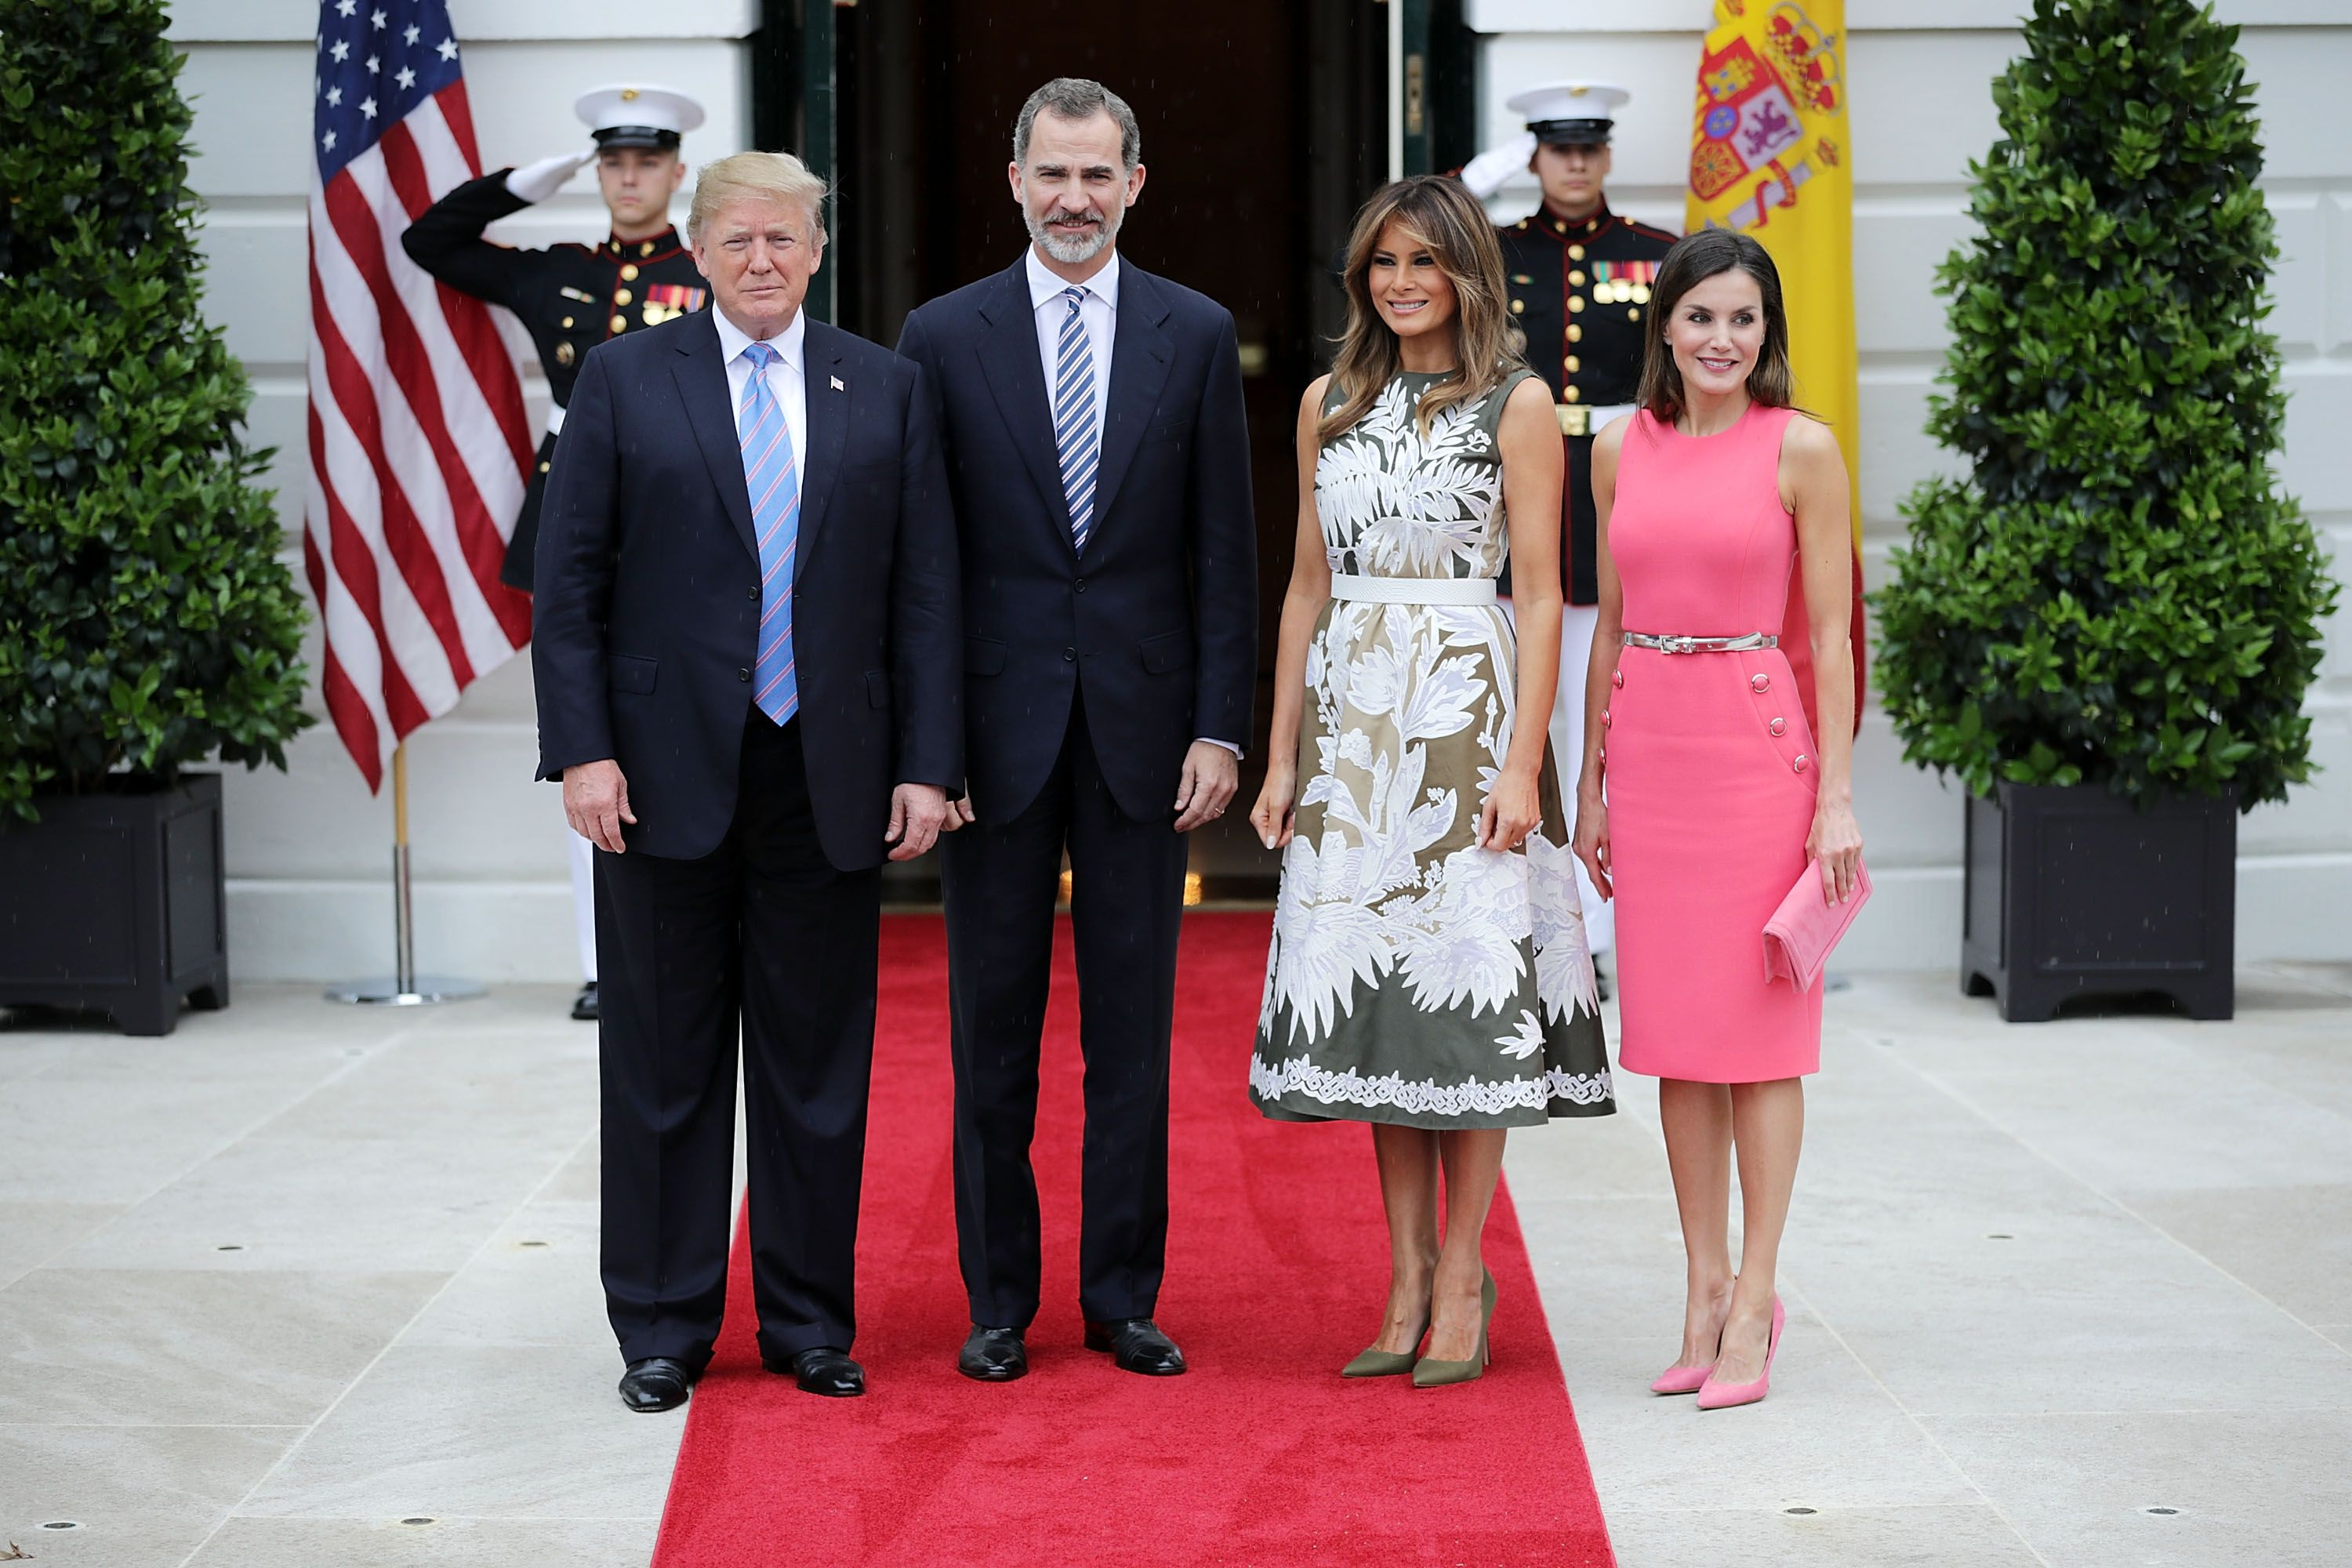 a6bc176d6827 Queen Letizia and King Felipe of Spain Meet the Trumps at the White House